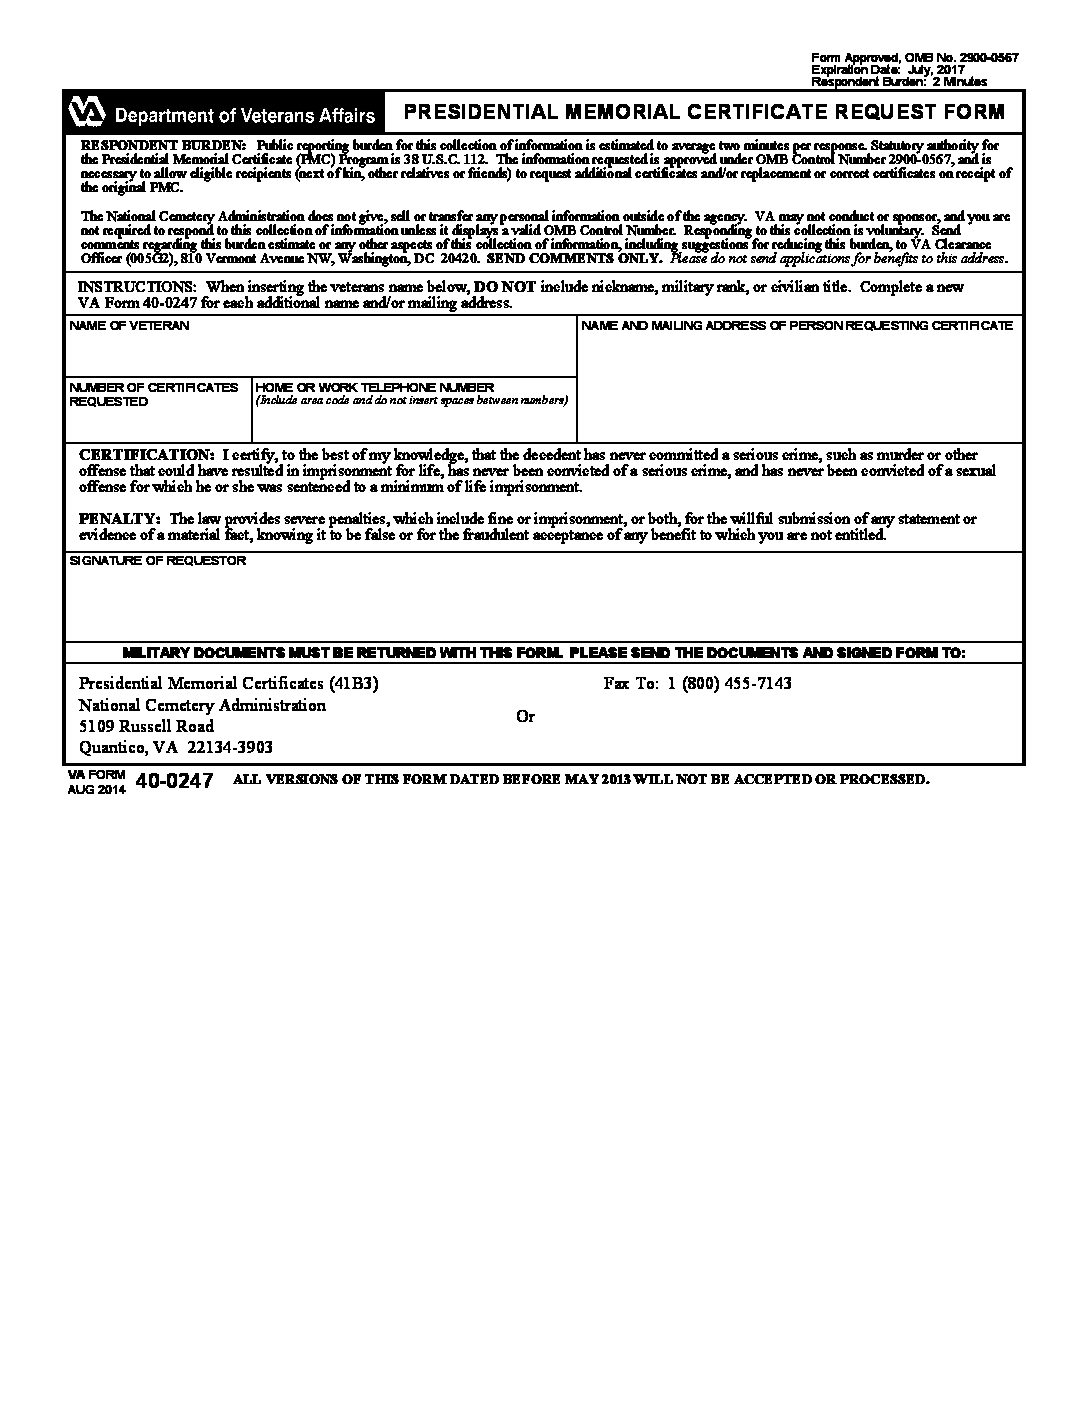 Request For Presidental Memorial Certificate Twiford Funeral Homes